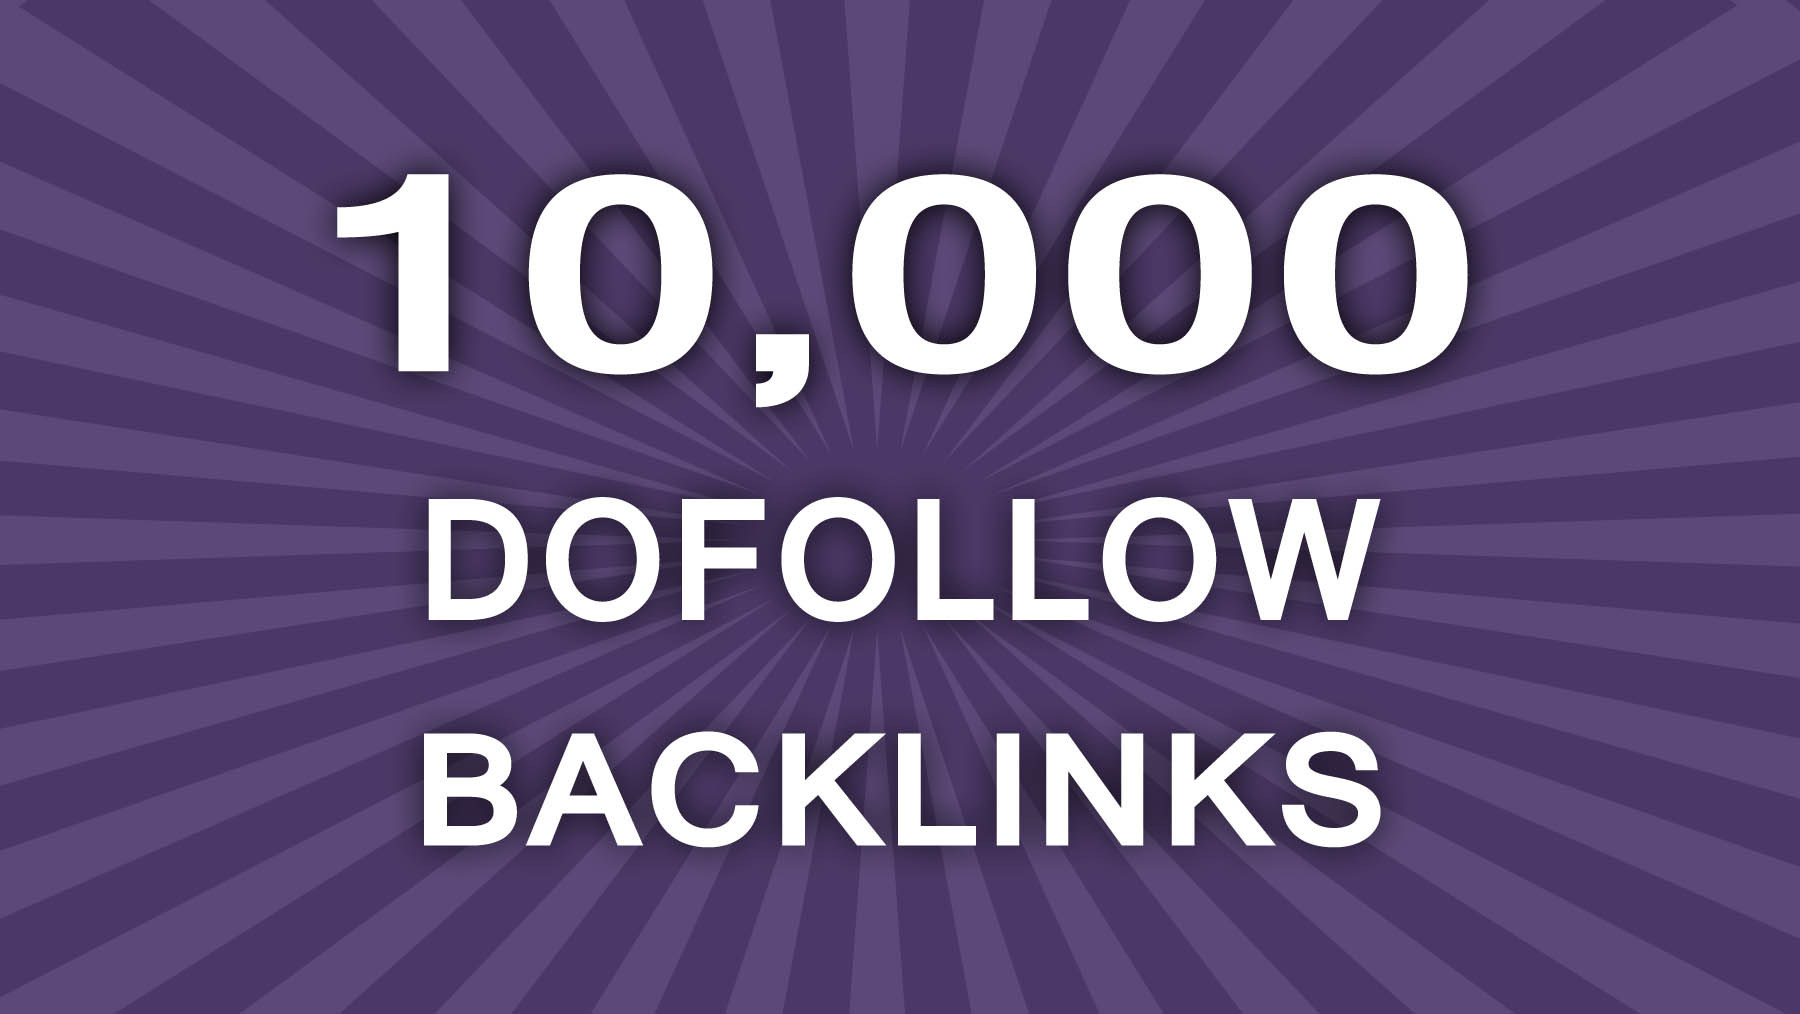 Rank High Like a Pro with 10,000 DoFollow SEO Friendly Backlinks